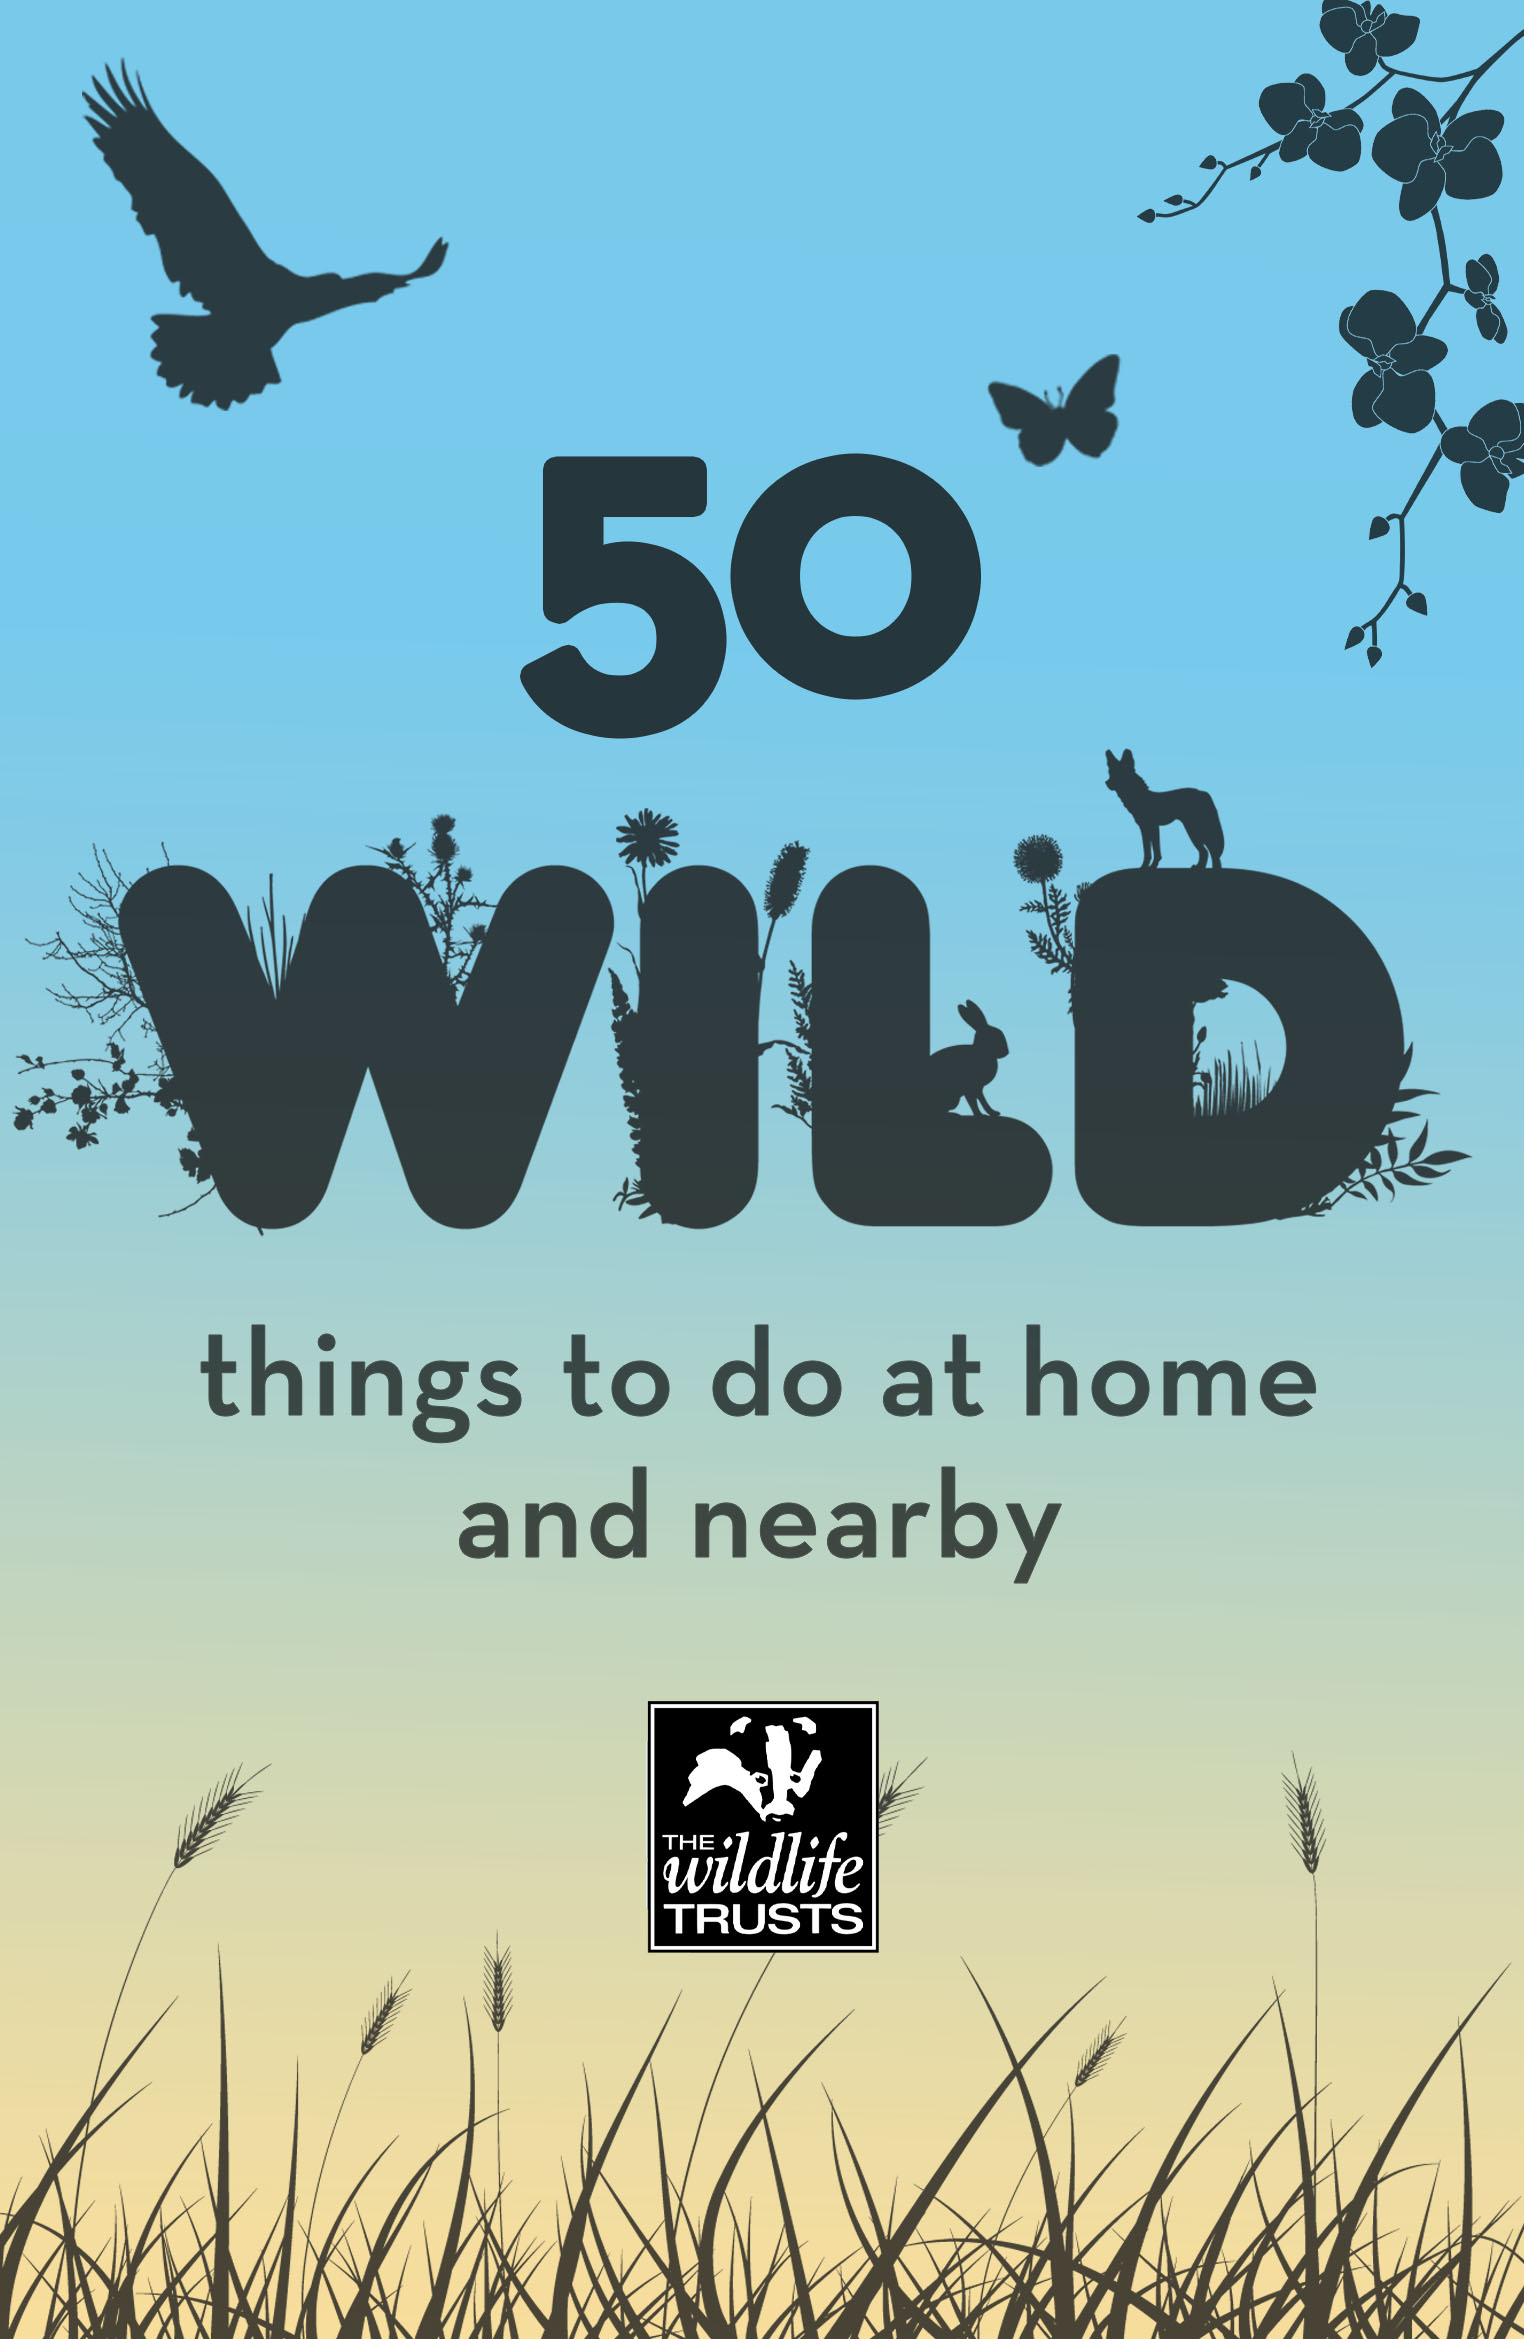 50 Wild Things to Do At Home and Nearby